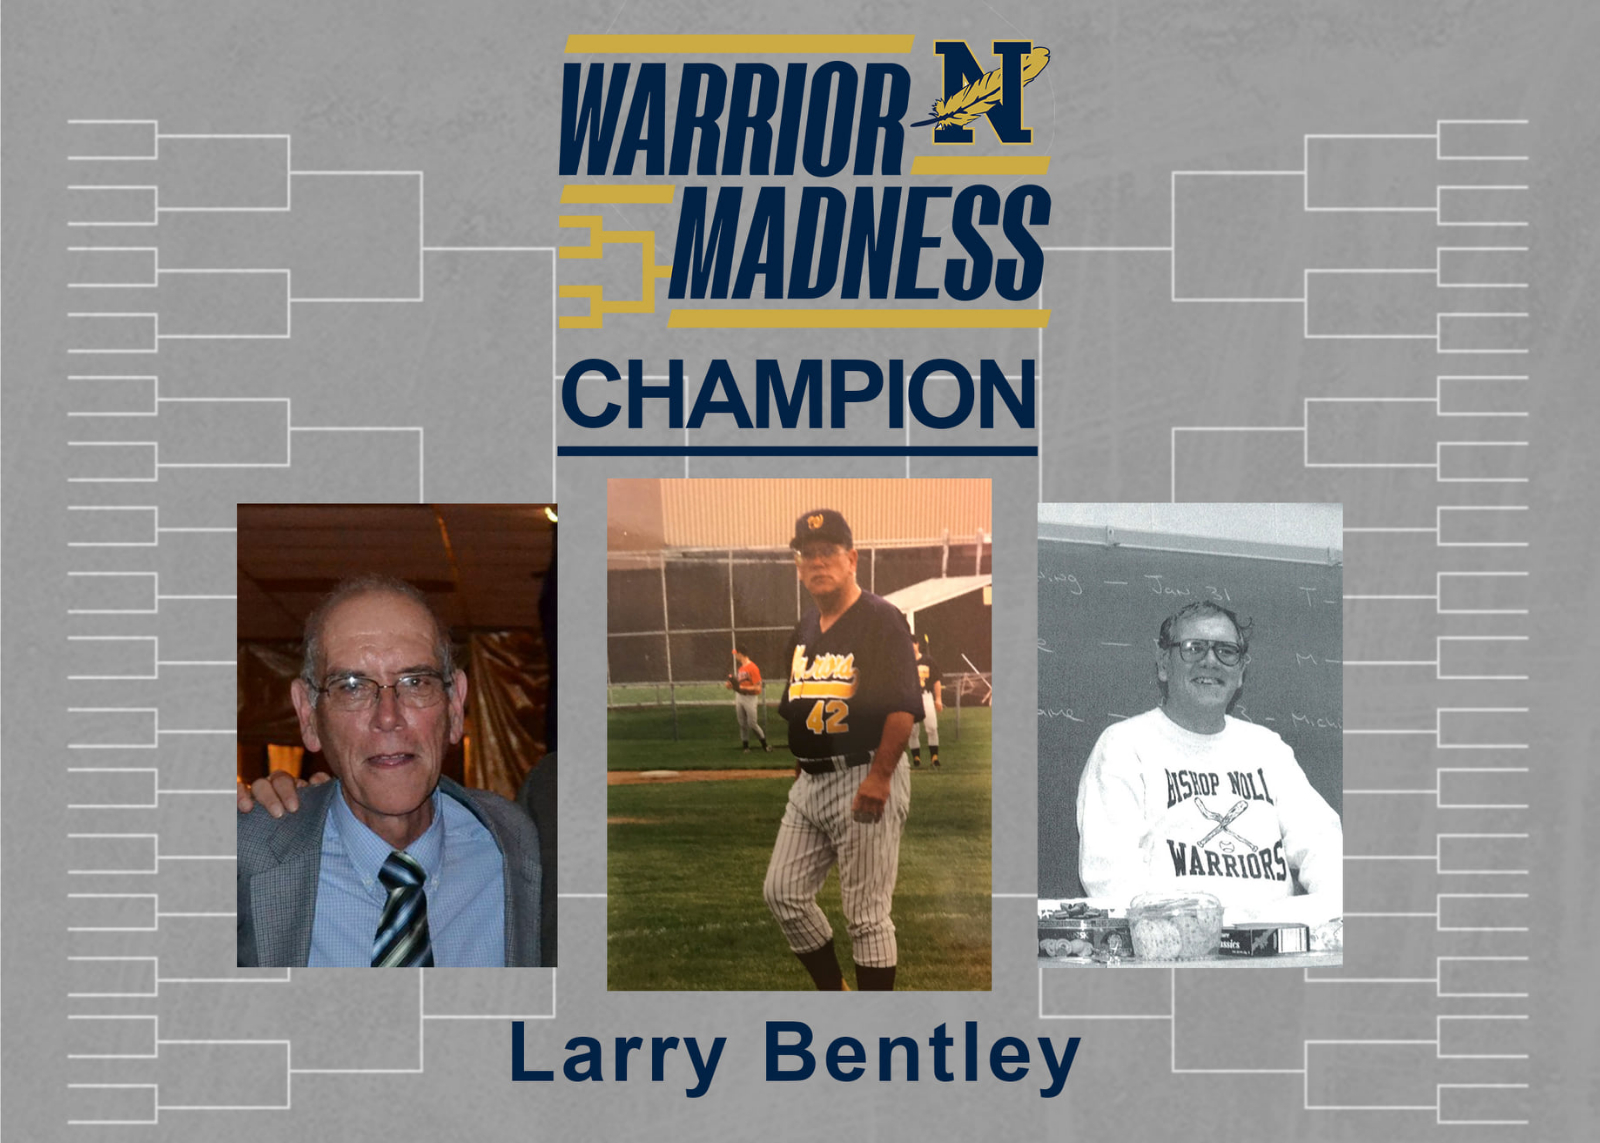 2021 Warrior Madness Champion – Larry Bentley